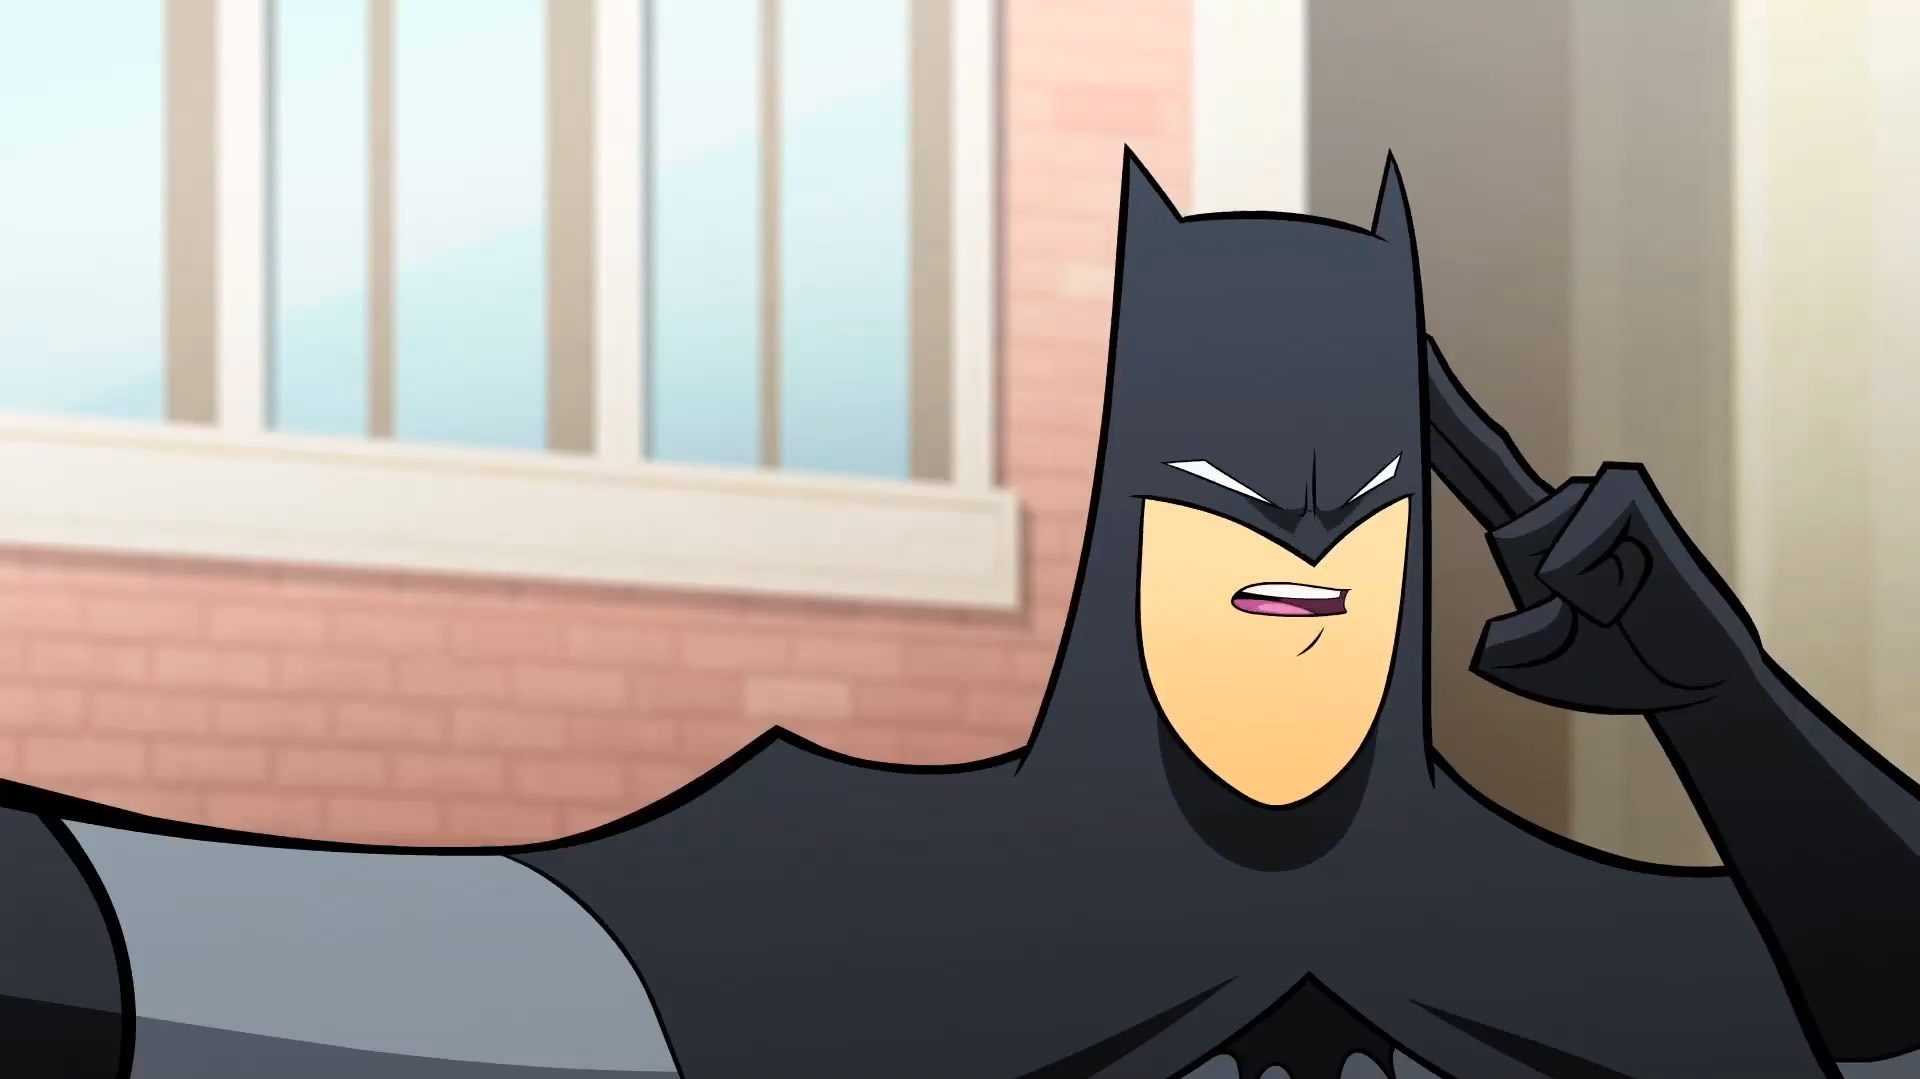 lois-lane-tries-to-interview-batman-in-animated-short-1.jpg